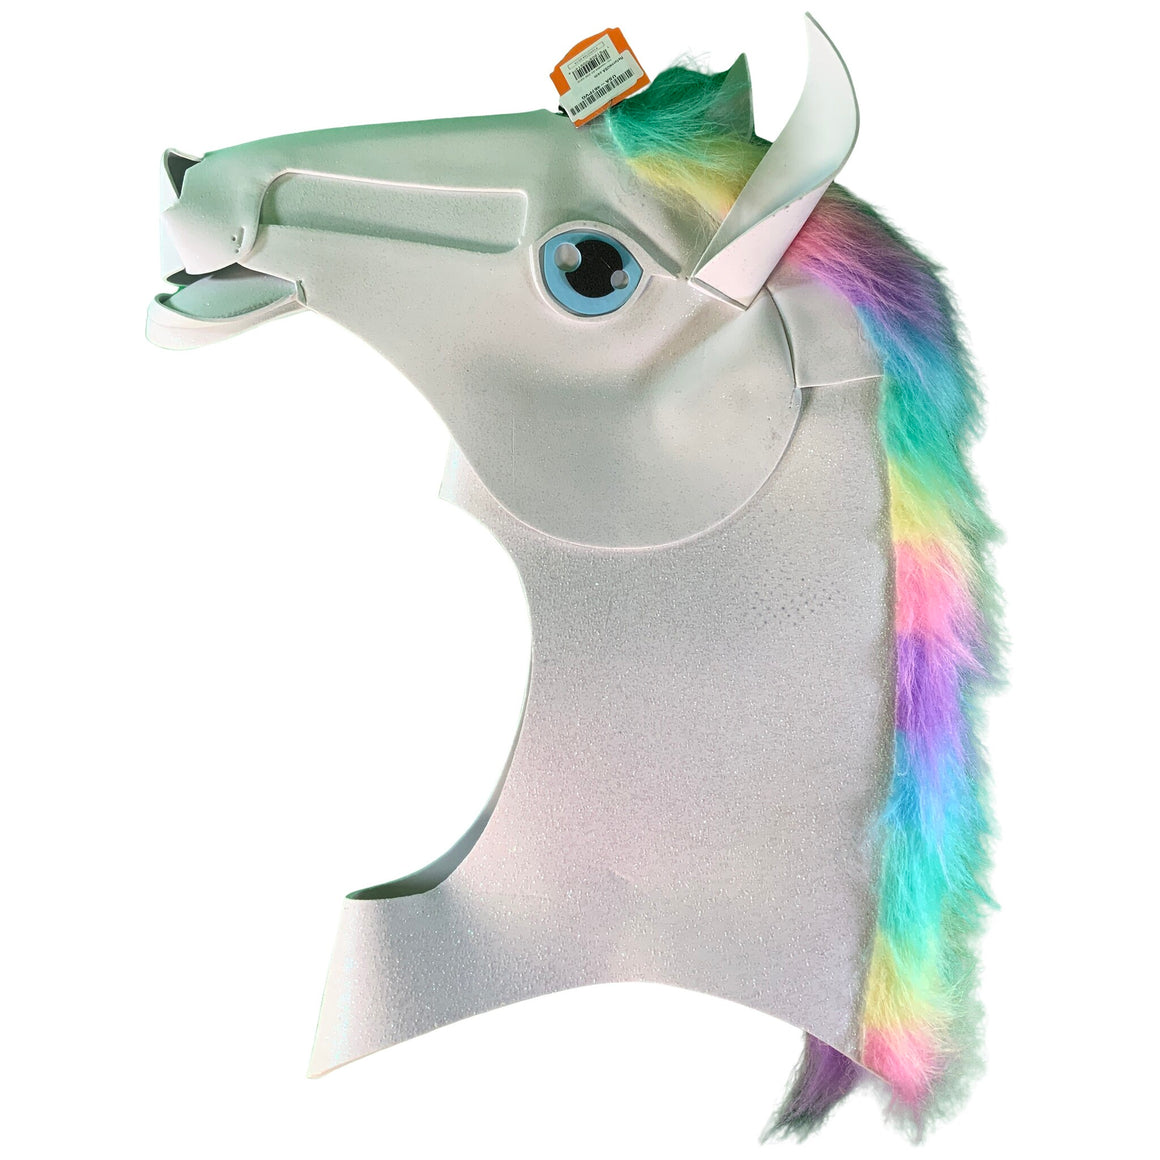 Adult Unicorn Mascot Head Halloween Costume Mask White - Hyde & Eek! Boutique™